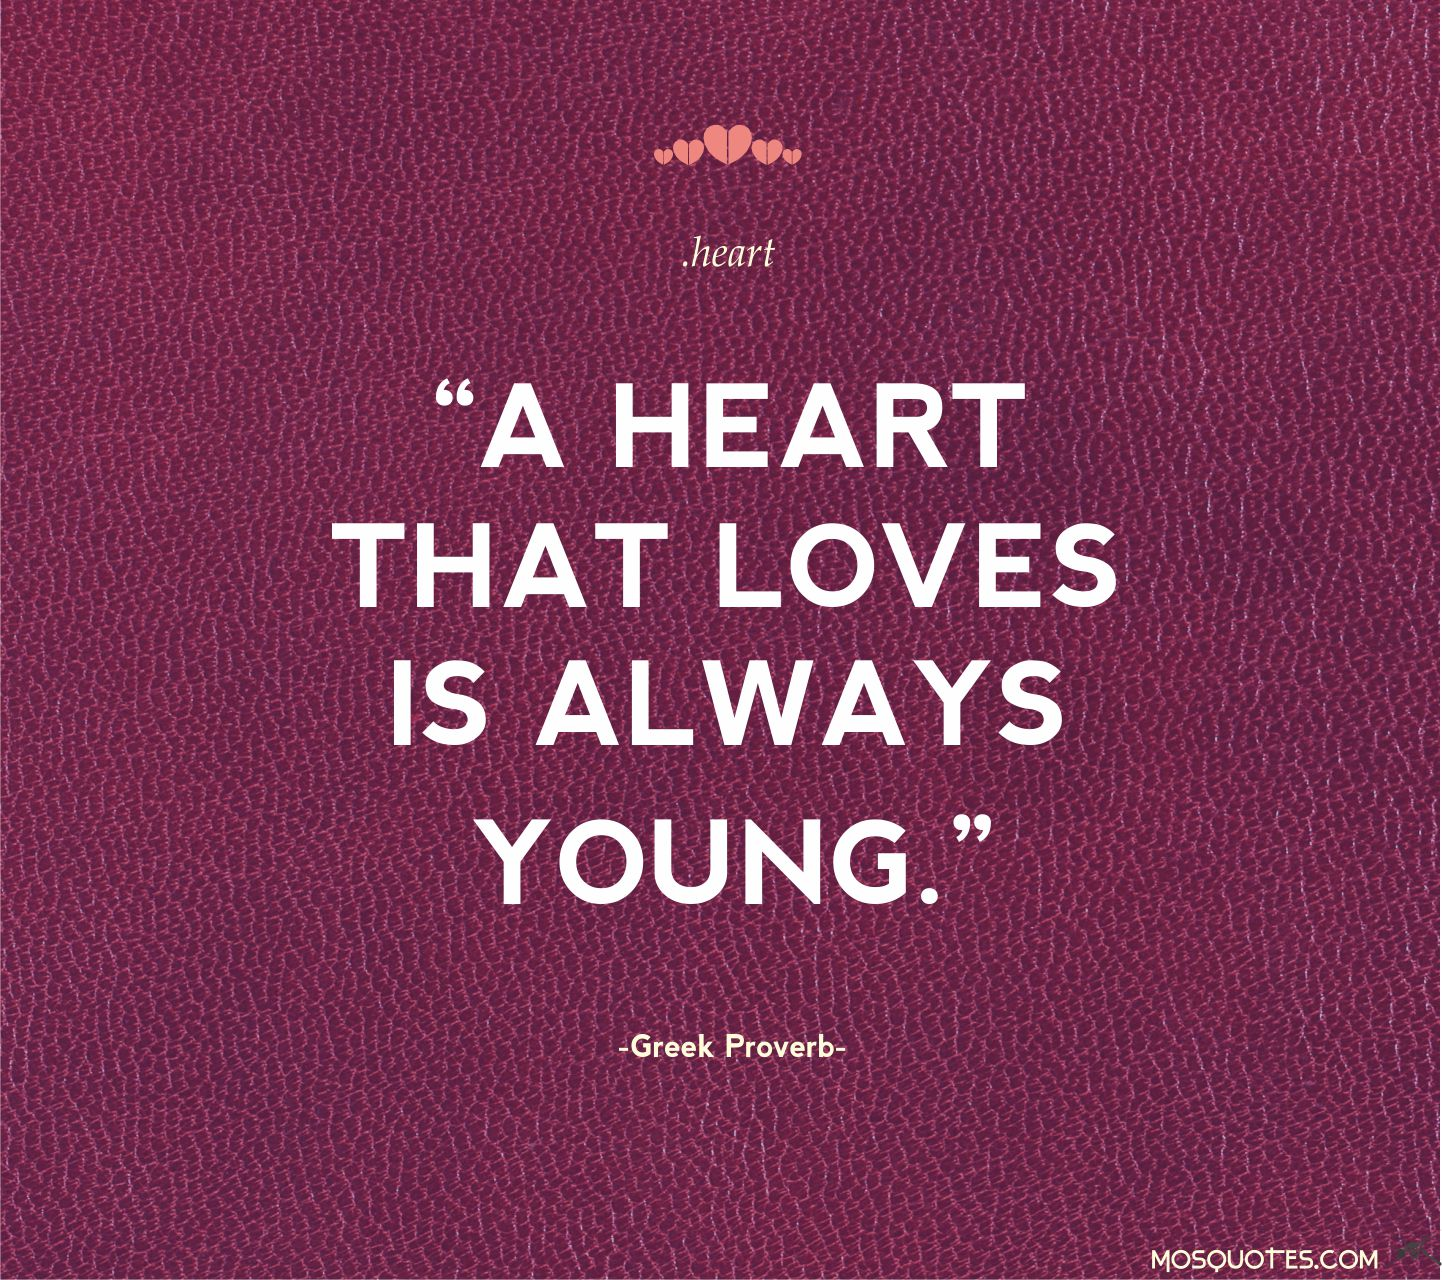 Funny Love Quotes For Her From The Heart Quotesgram: Young Love Quotes For Her. QuotesGram